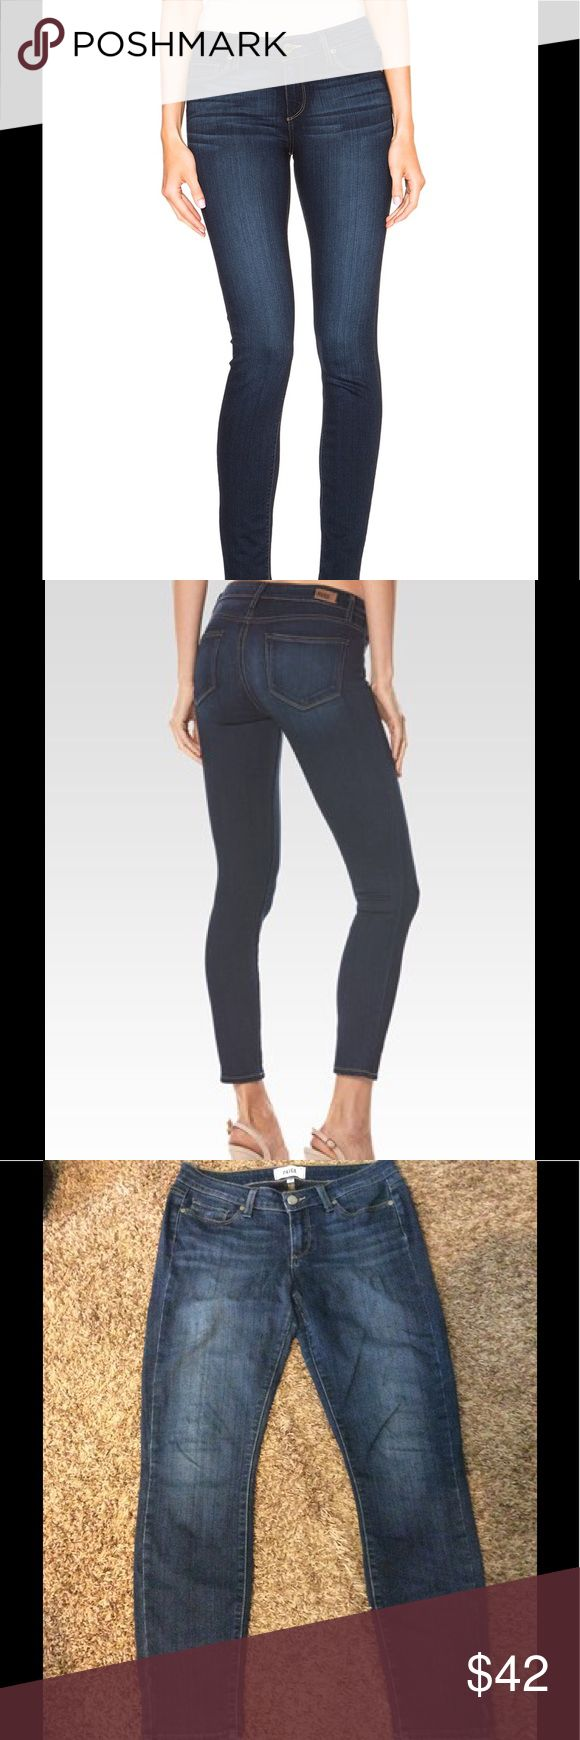 """Sale❗️Paige Verdugo Ankle Jeans Great jeans! Nice stretch and perfect for any occasion. Rayon, cotton, polyester and spandex. Waist measures 30"""" laying flat. 28"""" inseam. Crotch of pants is starting to thin, but still in great condition. Paige Jeans Jeans Ankle & Cropped"""